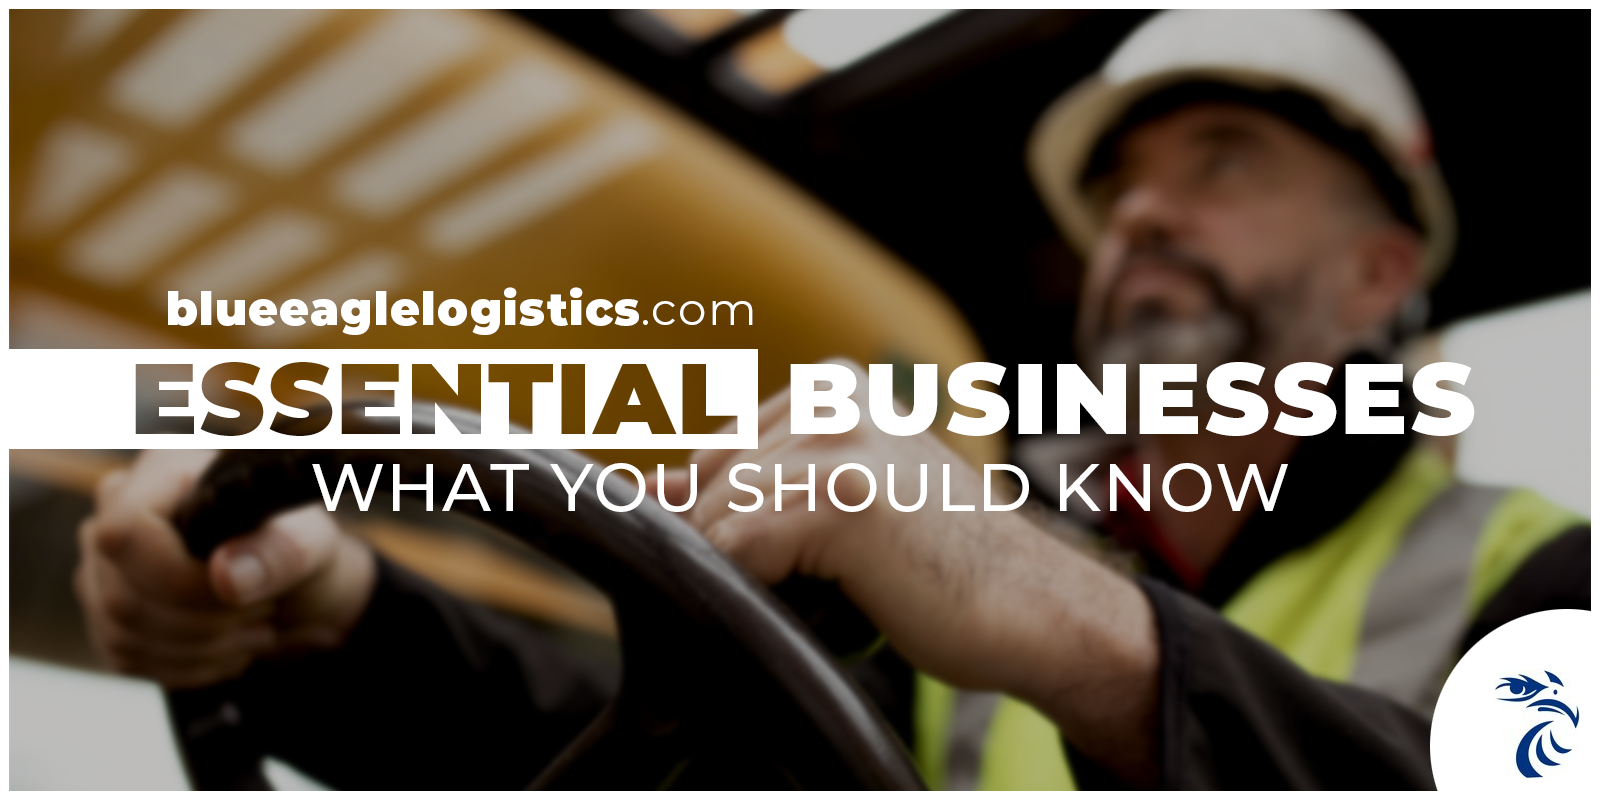 Driver with hands on steering wheel with headline: Essential Businesses What You Should Know